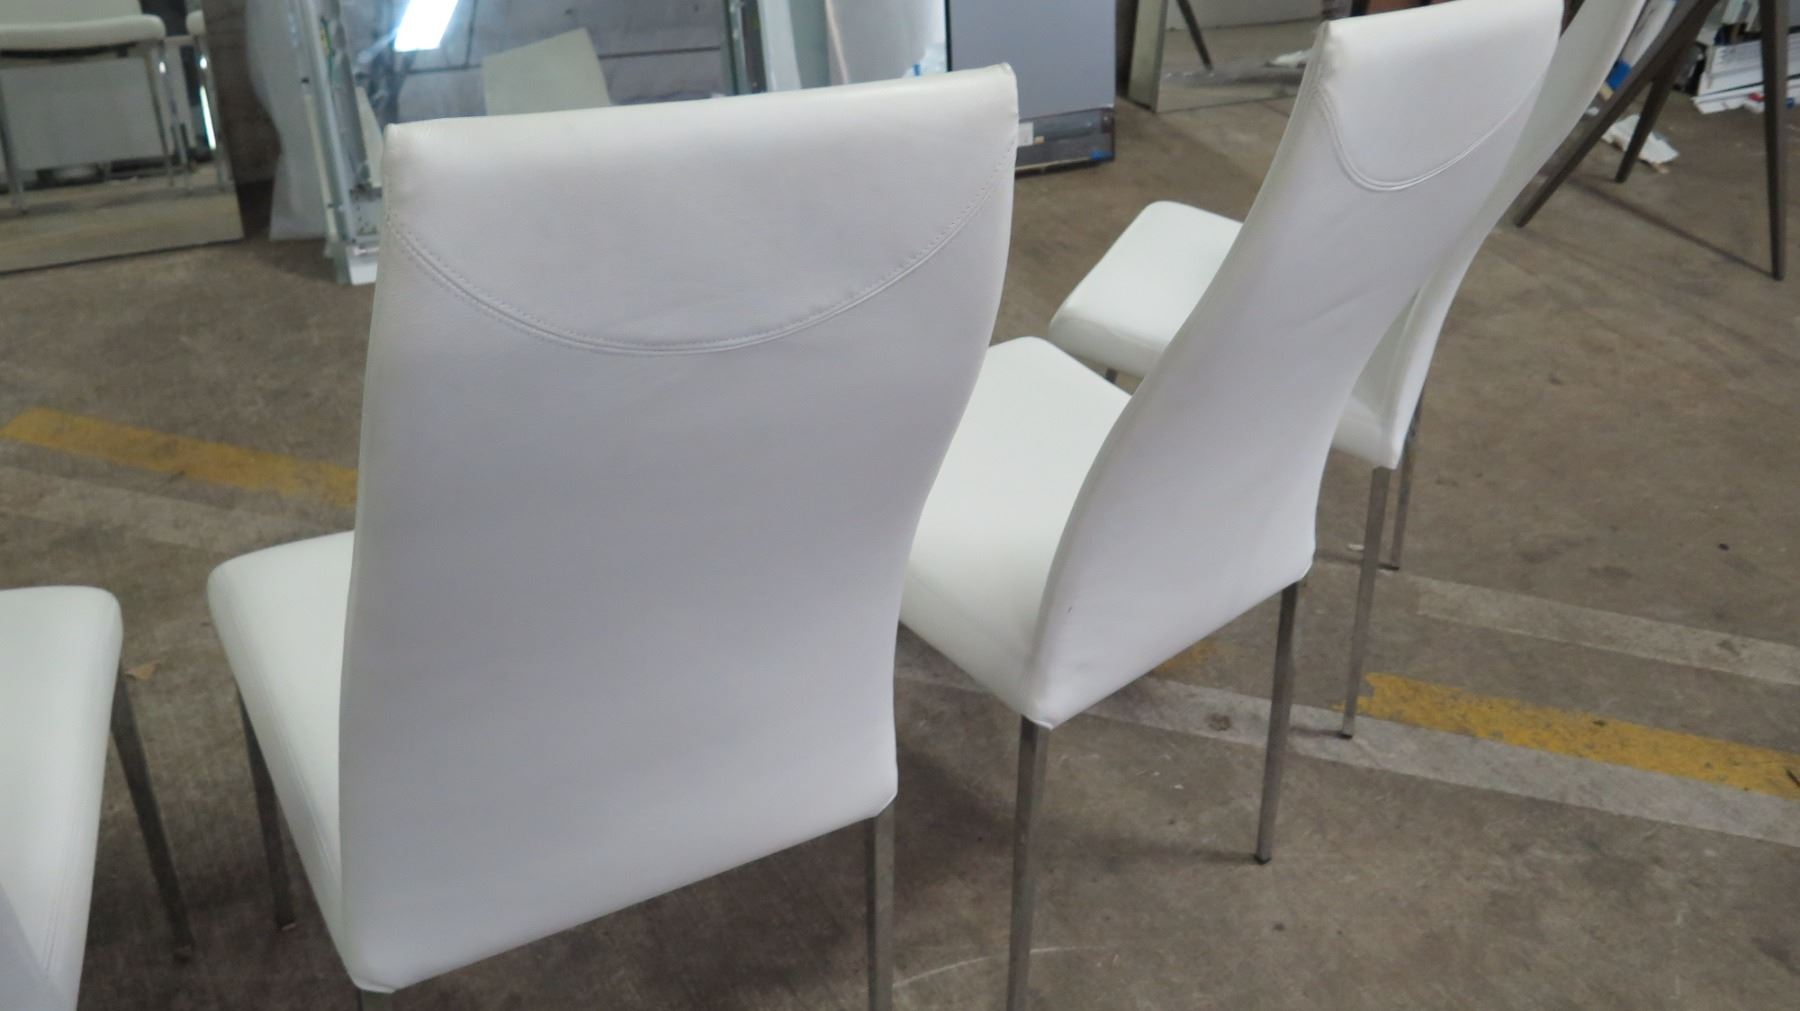 Peachy Qty 4 White Leather Chairs From Cattelan Italia 18W 41 5 Ibusinesslaw Wood Chair Design Ideas Ibusinesslaworg